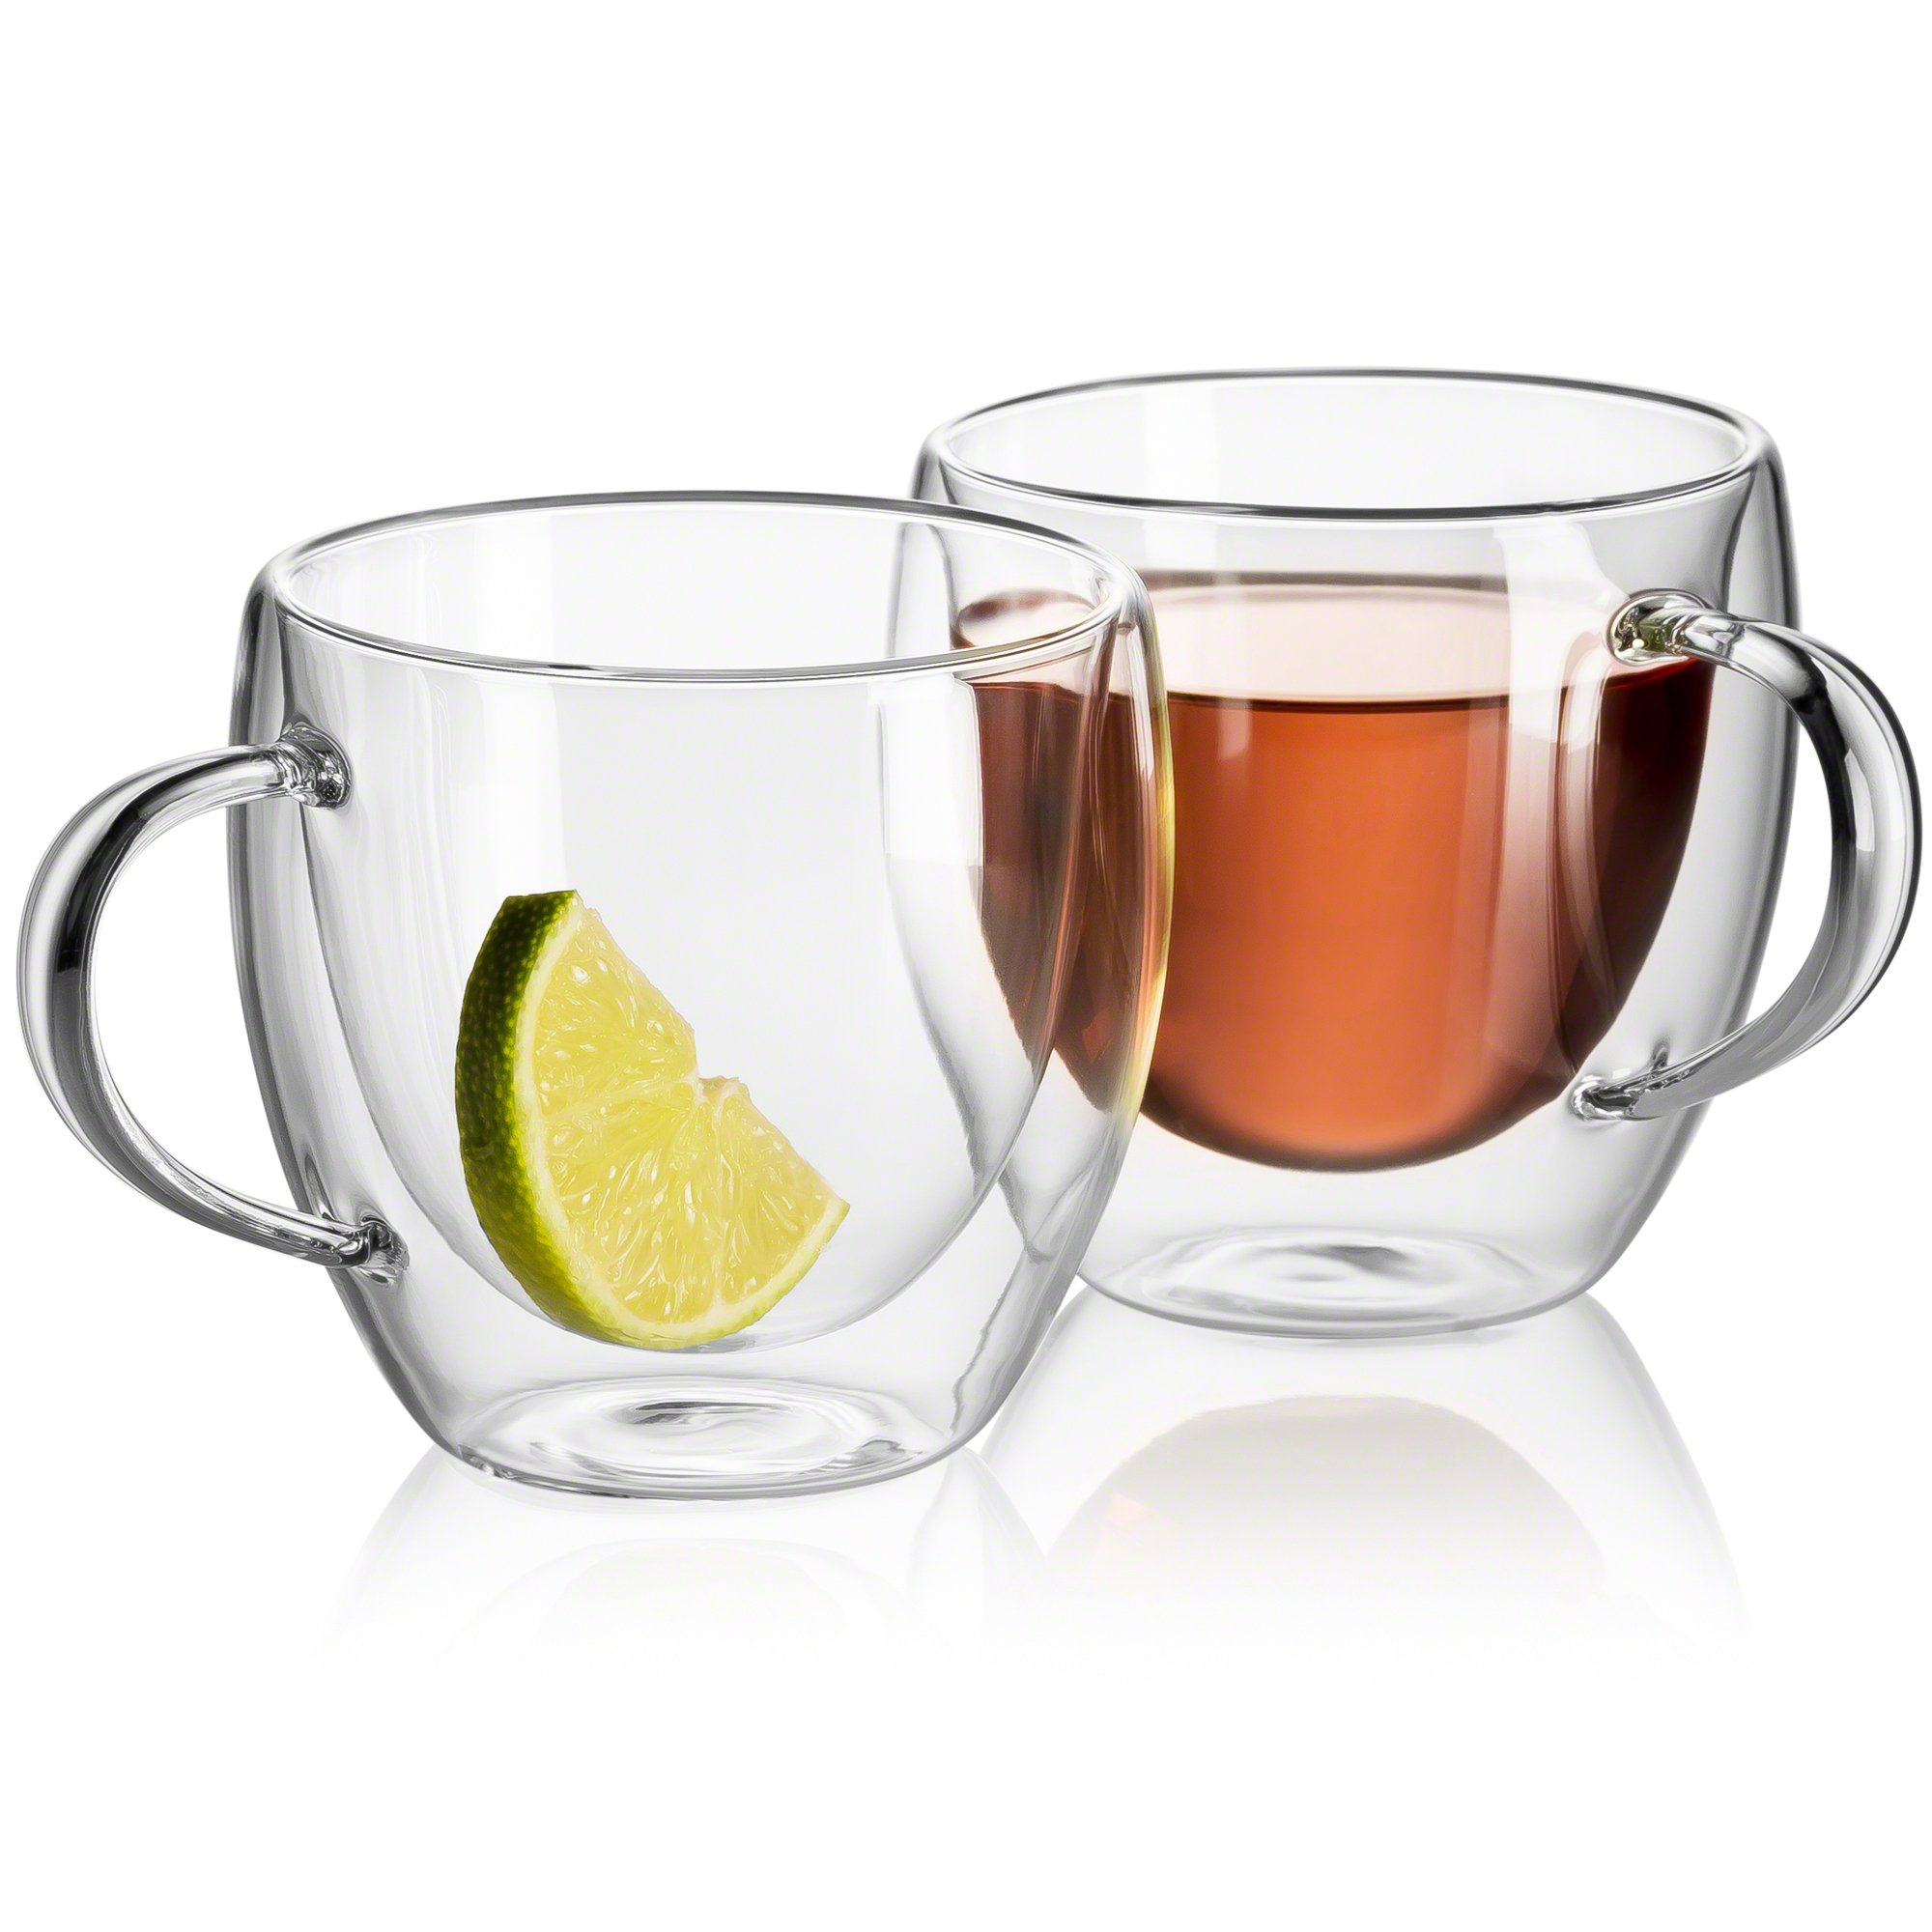 Tea Cups - Double Walled Insulated Glass Set of 2, 8 oz, Glass Coffee Cup,Dishwasher. Microwave, freezer with NO RISK.